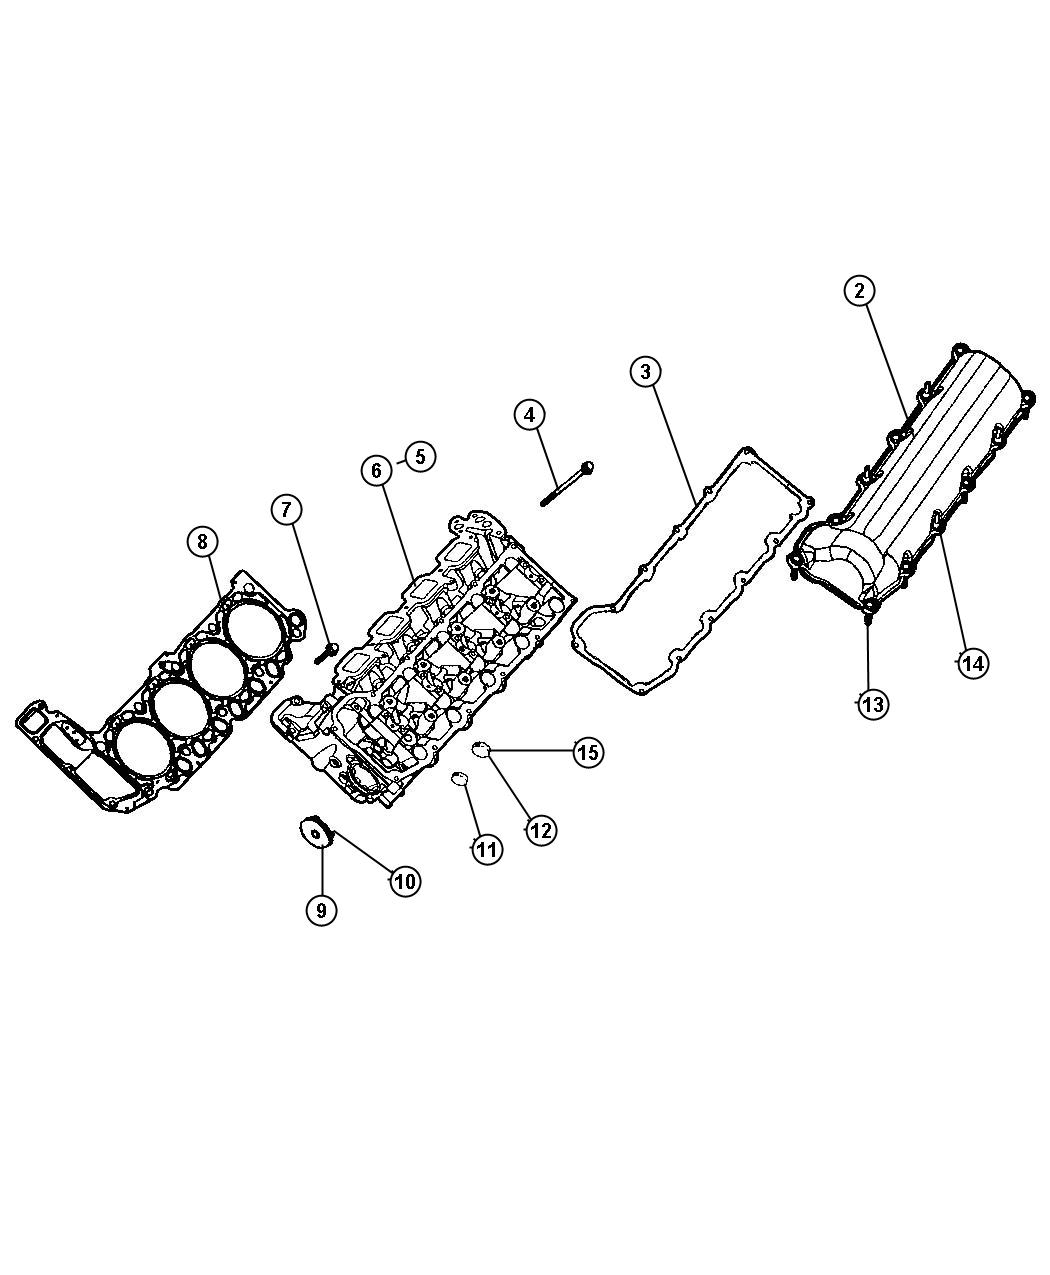 Cylinder Head, 4.7L, [4.7L V8 MPI Engine],[4.7L V8 FFV Engine]. Diagram